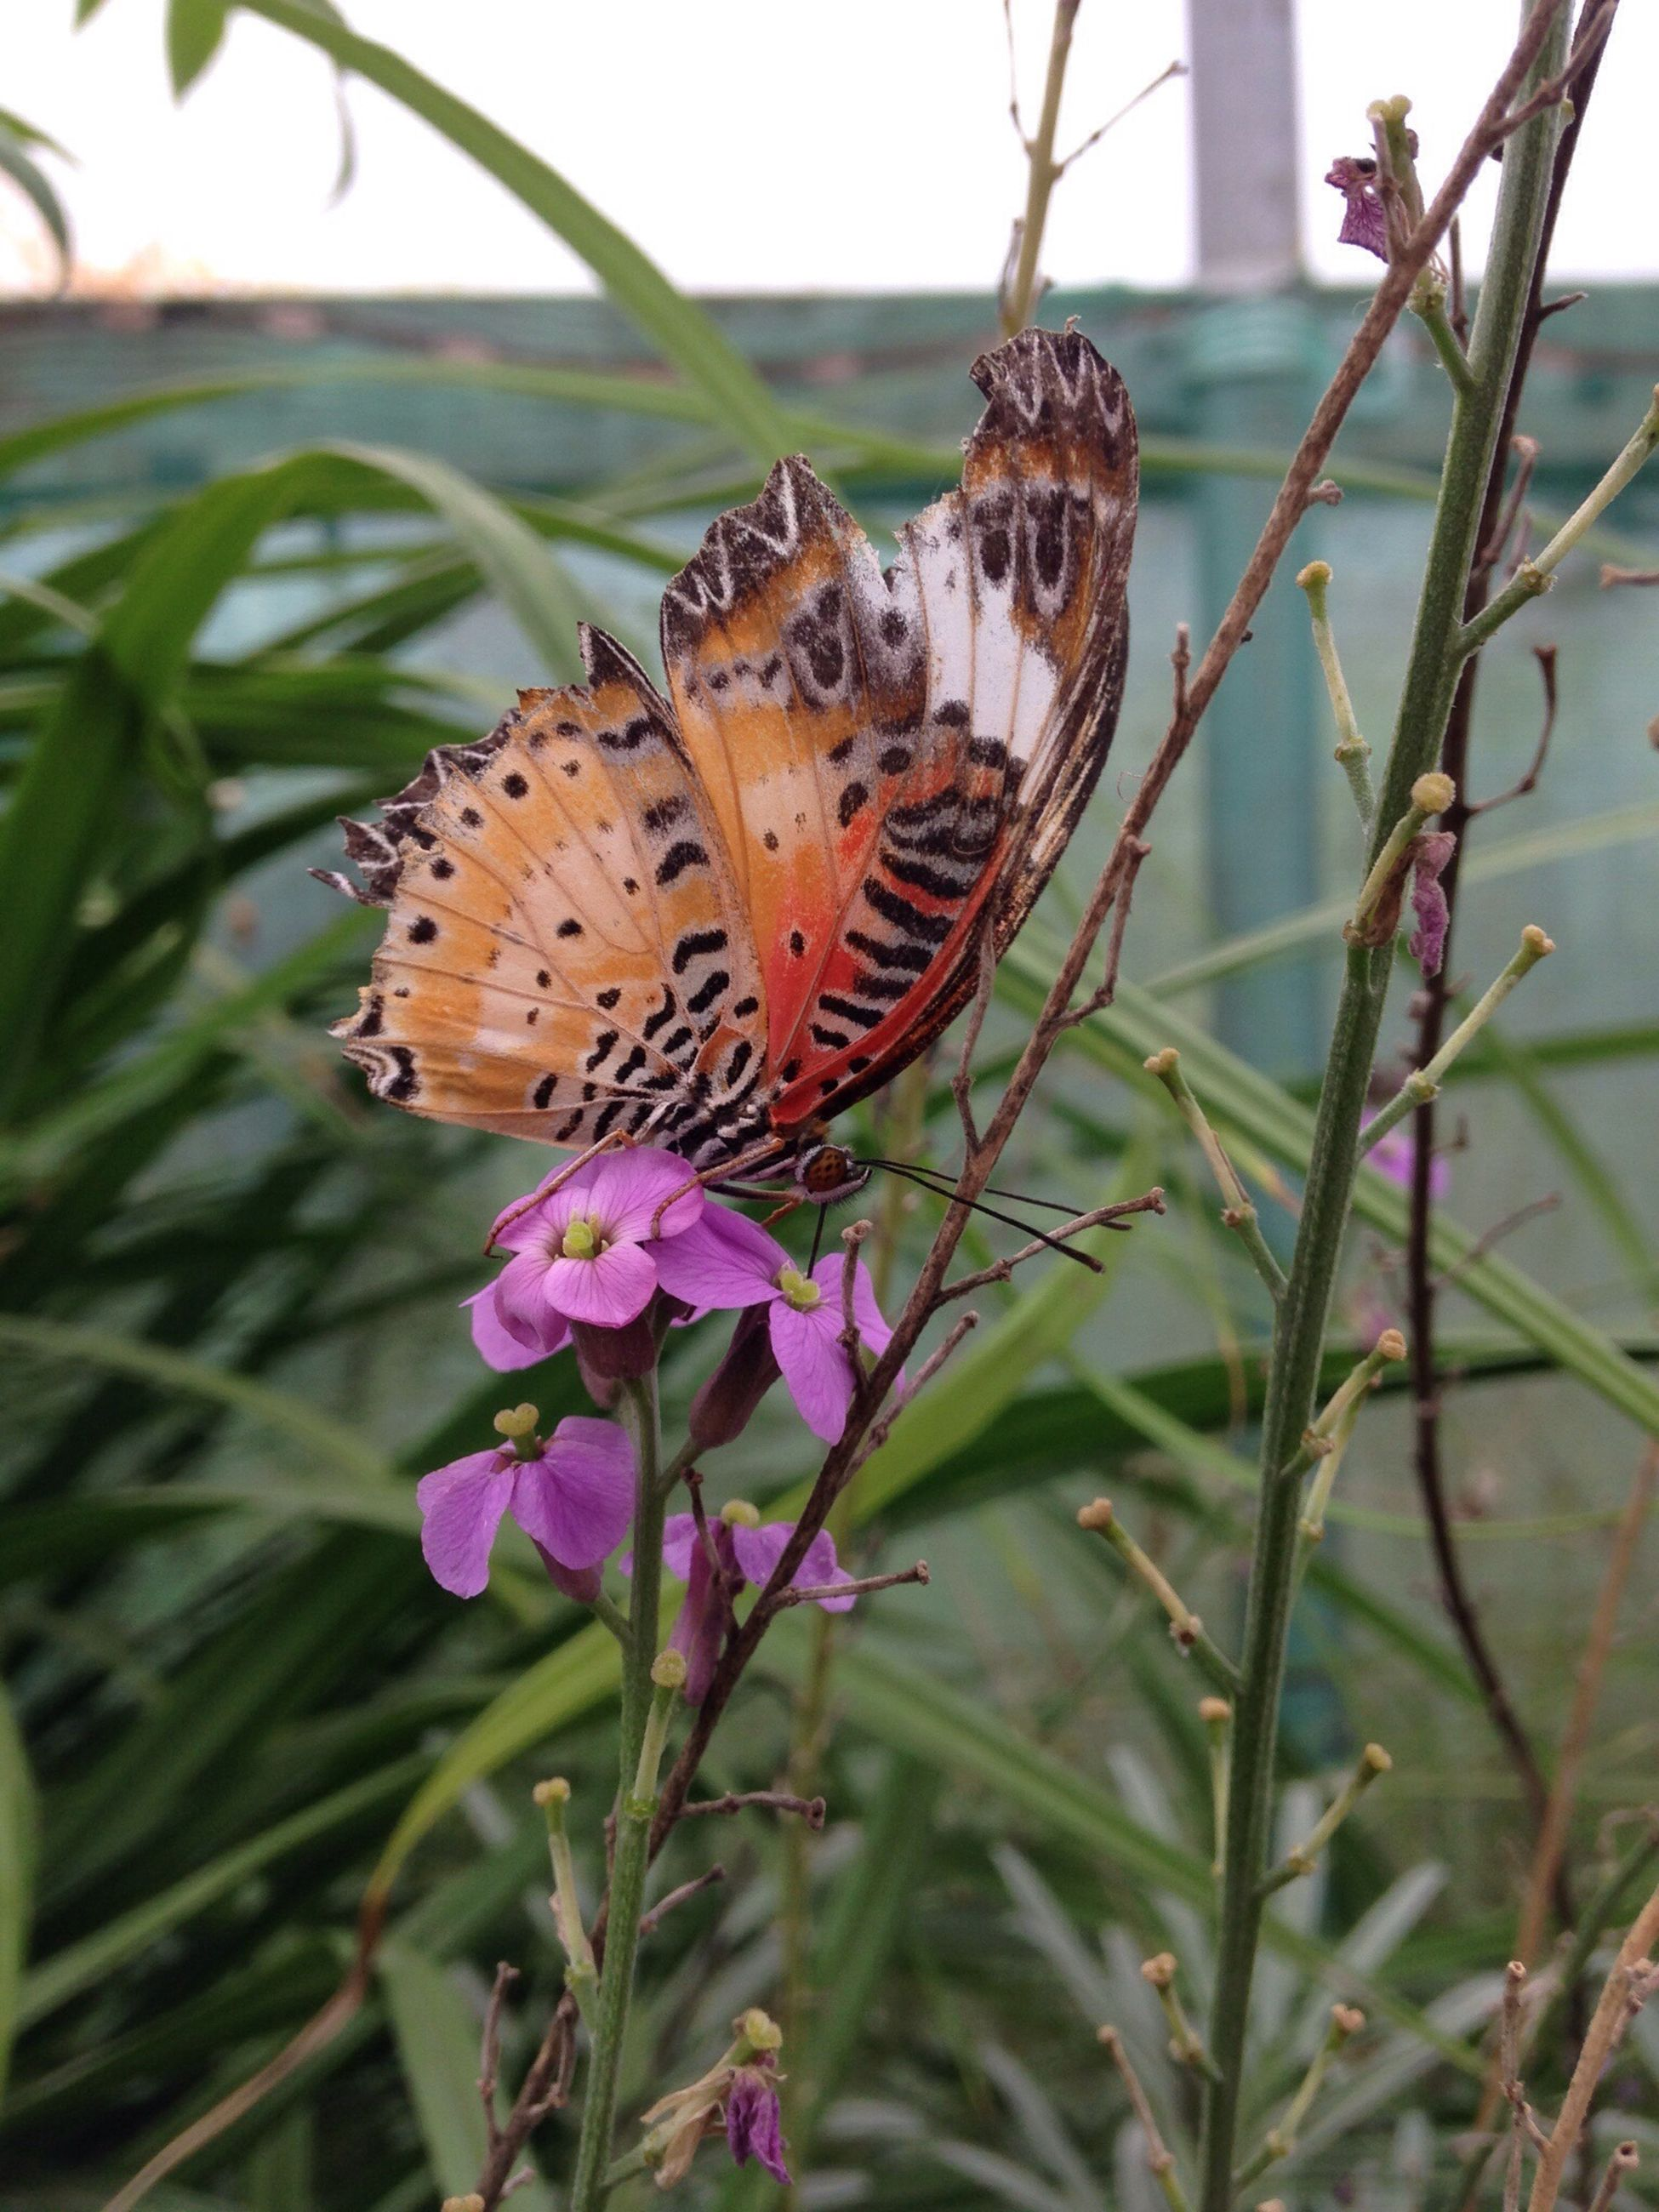 one animal, animal themes, animals in the wild, insect, flower, wildlife, butterfly - insect, butterfly, plant, fragility, focus on foreground, beauty in nature, growth, close-up, animal markings, nature, freshness, pollination, animal wing, natural pattern